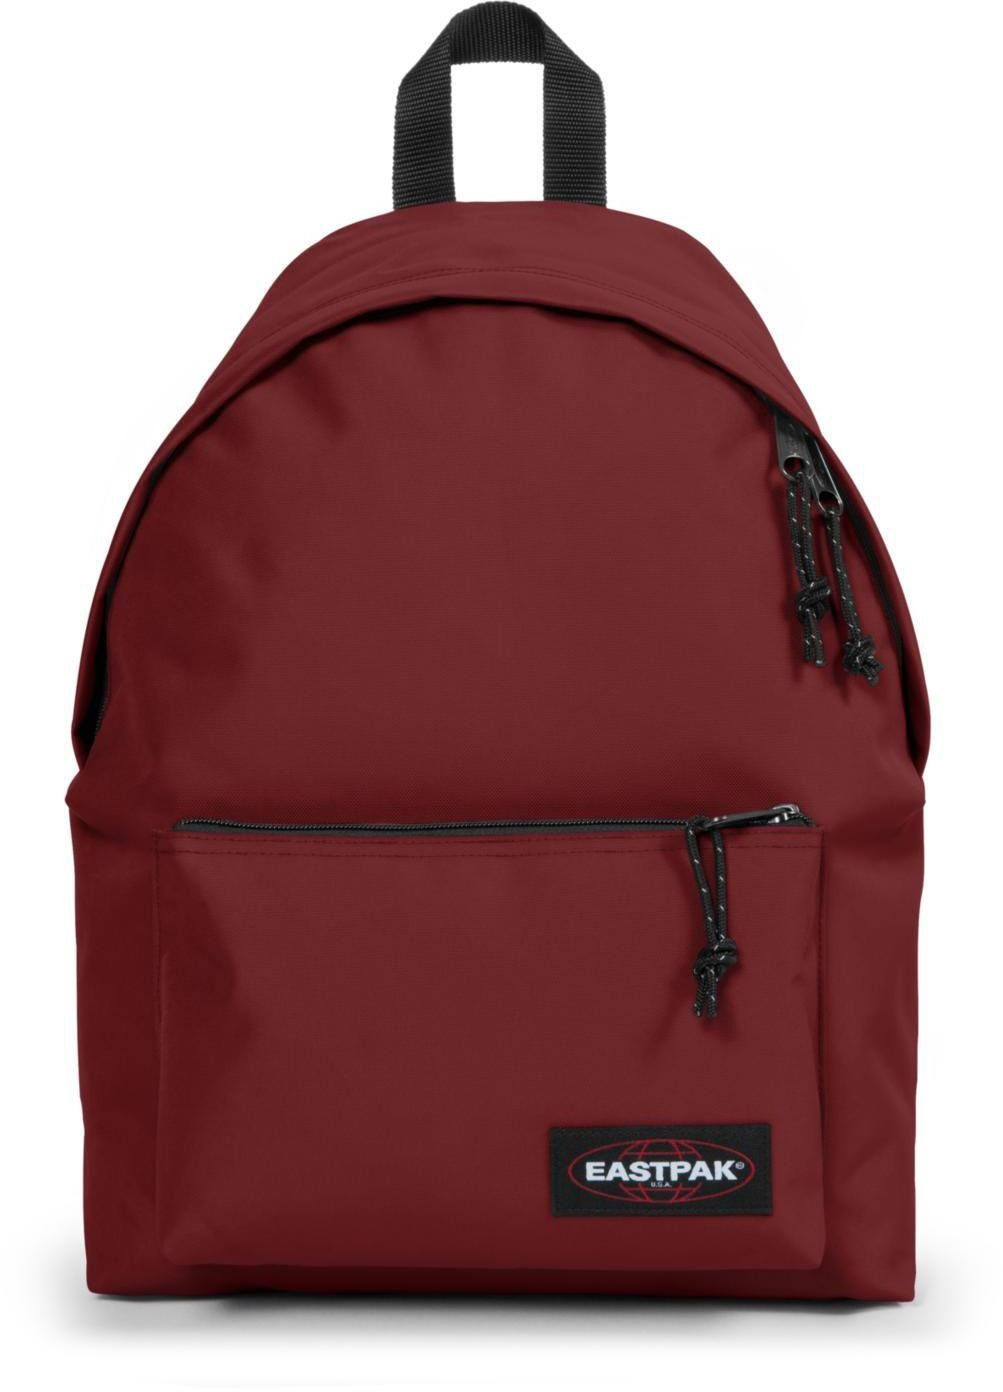 Eastpak Rucksack mit Tabletfach, »PADDED SLEEK'R brave burgundy«